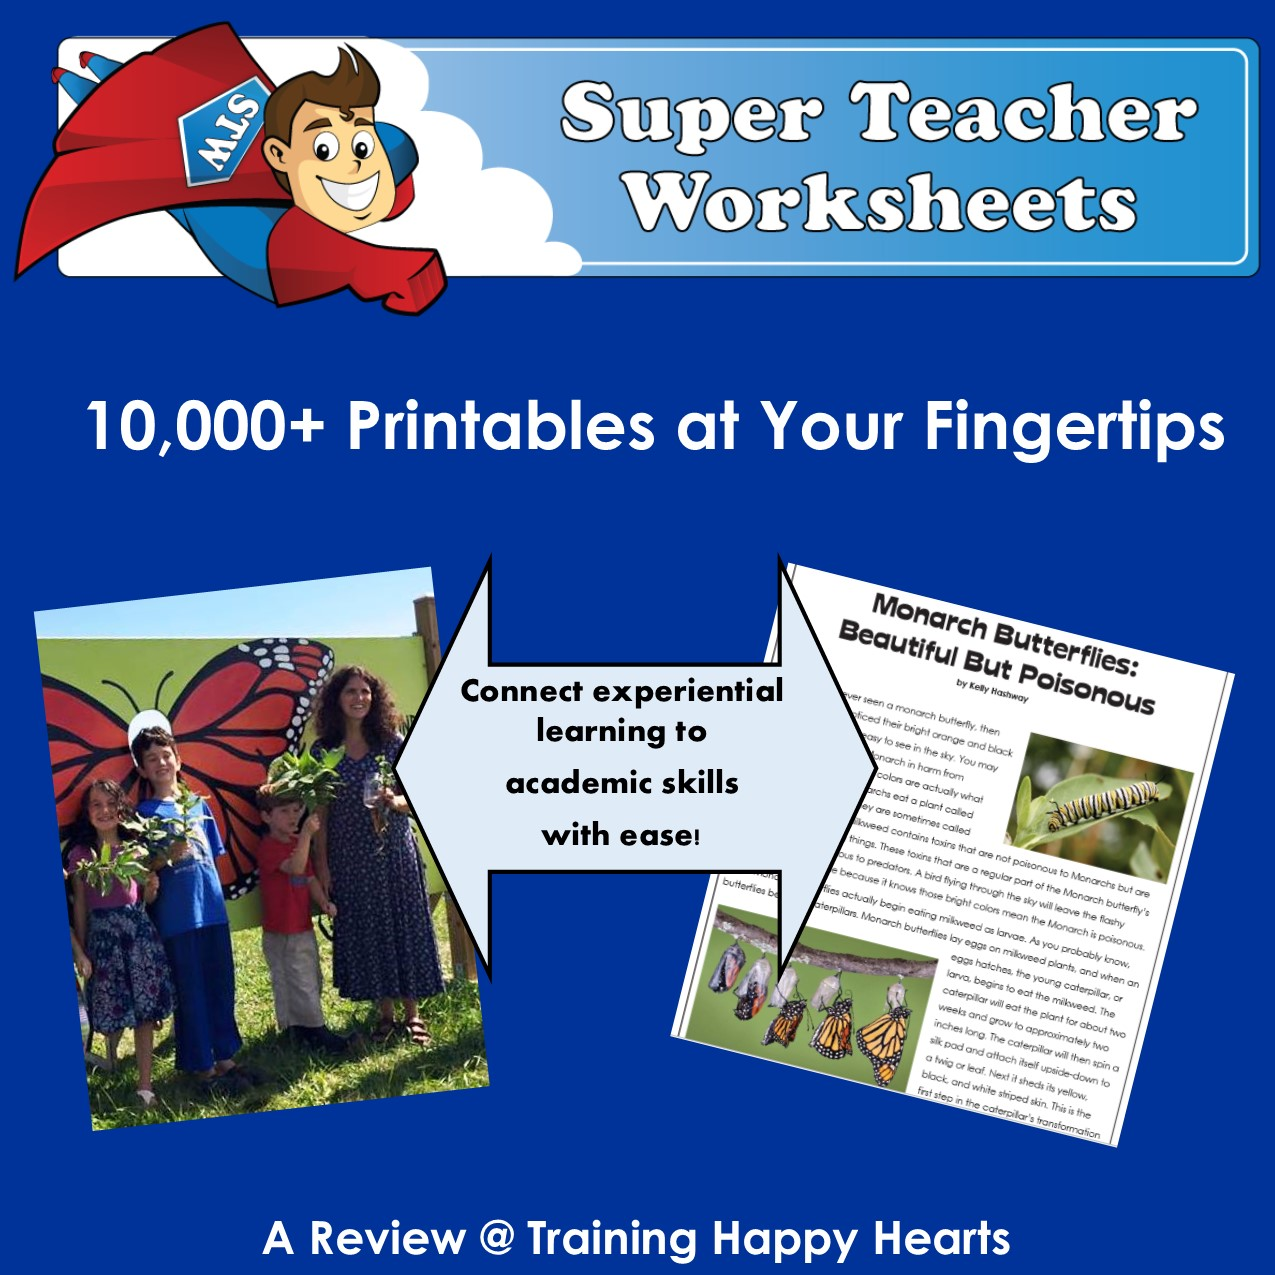 Worksheets Super Teacher Worksheet Password super teacher worksheets login and password fireyourmentor free username 2014 smart wiki today 2